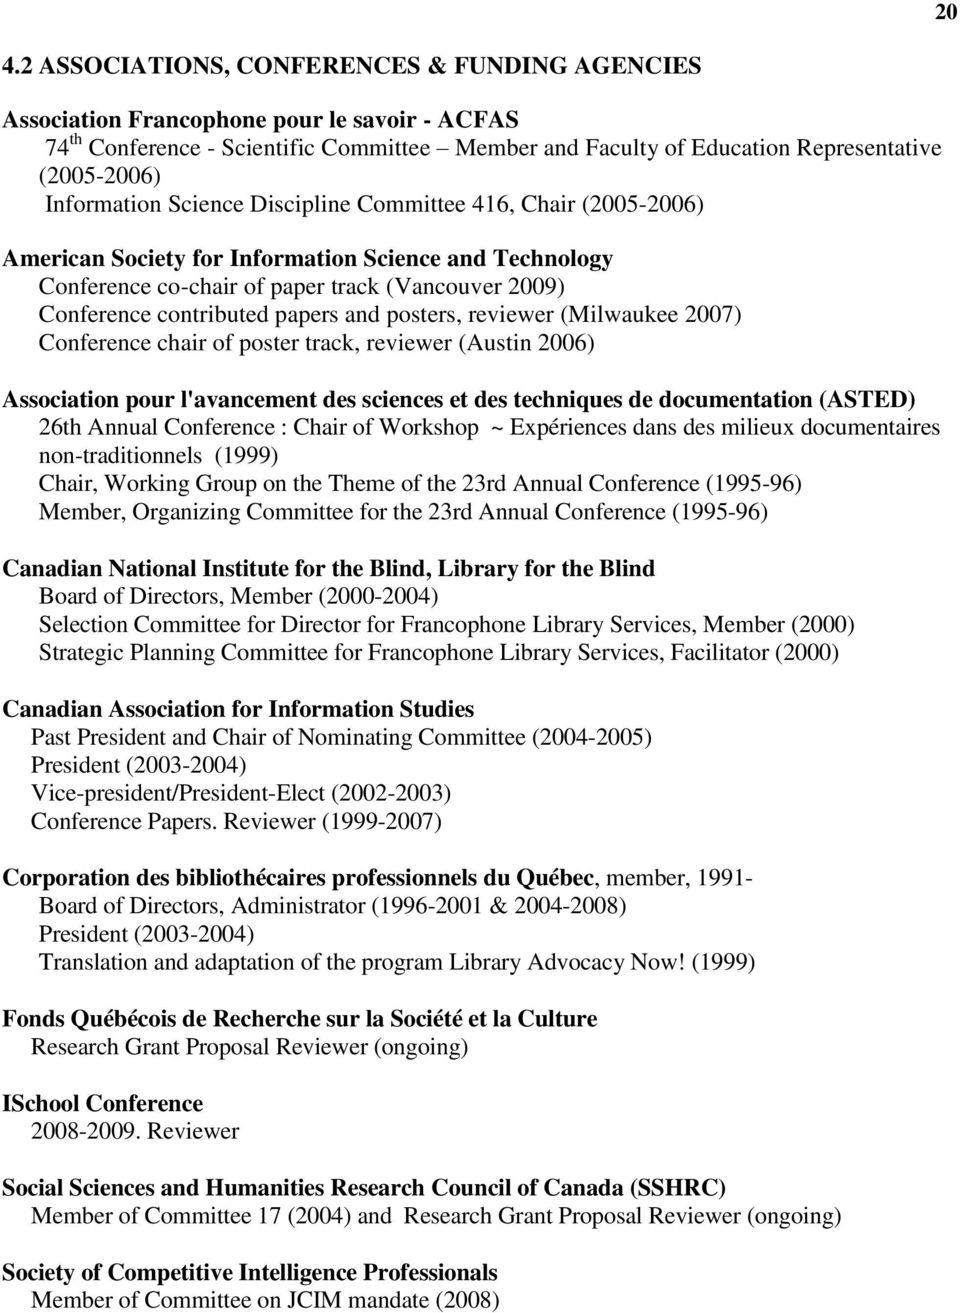 papers and posters, reviewer (Milwaukee 2007) Conference chair of poster track, reviewer (Austin 2006) Association pour l'avancement des sciences et des techniques de documentation (ASTED) 26th